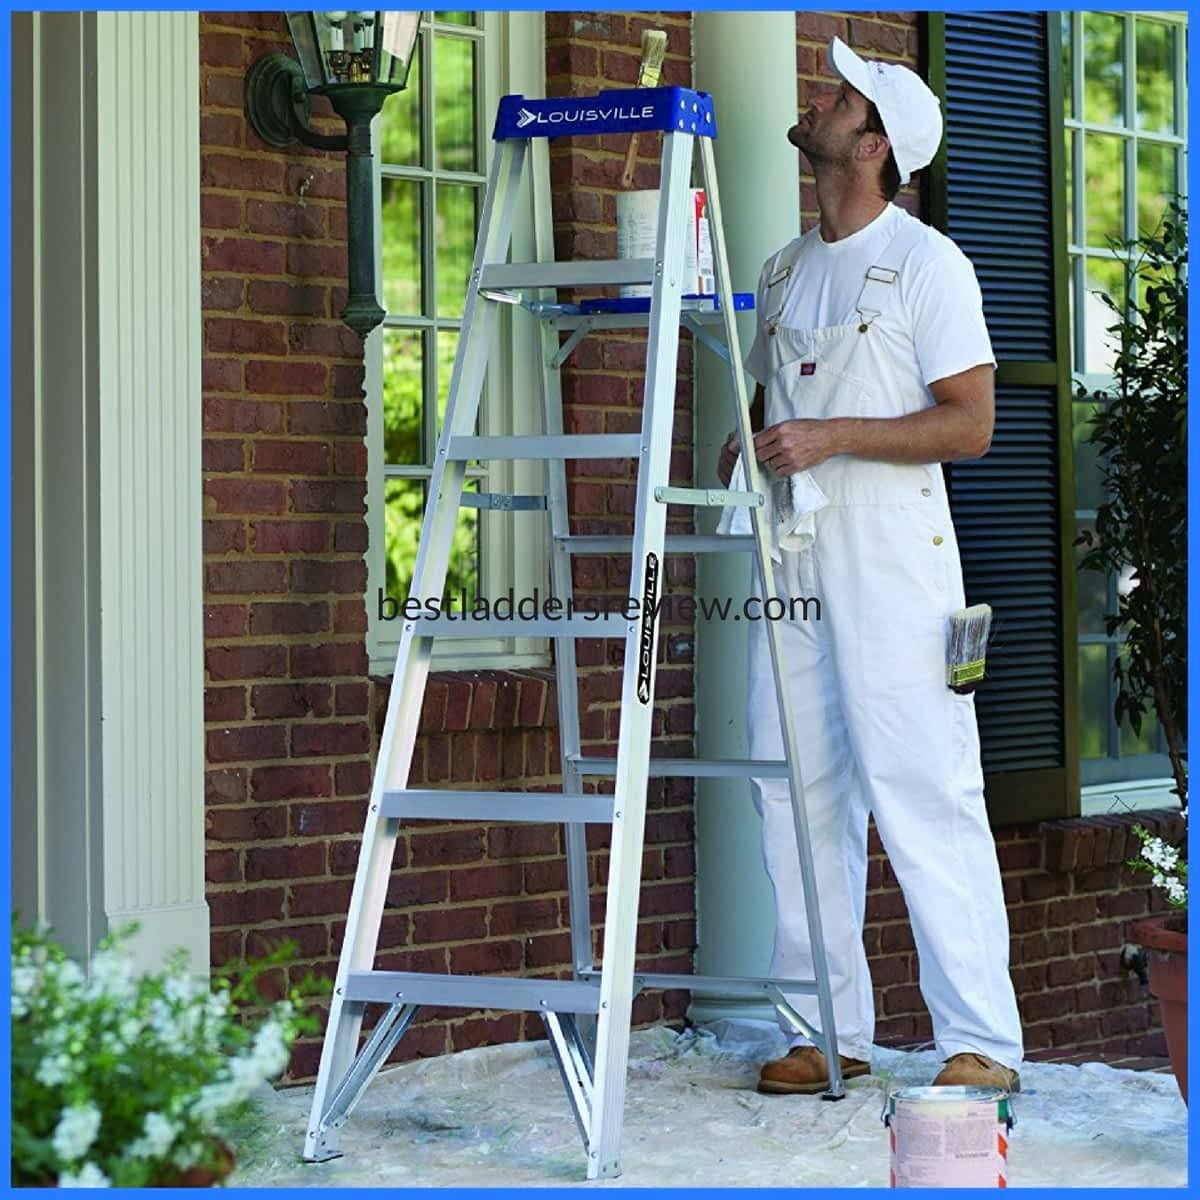 Louisville AS2106 250-Pound Step Ladder